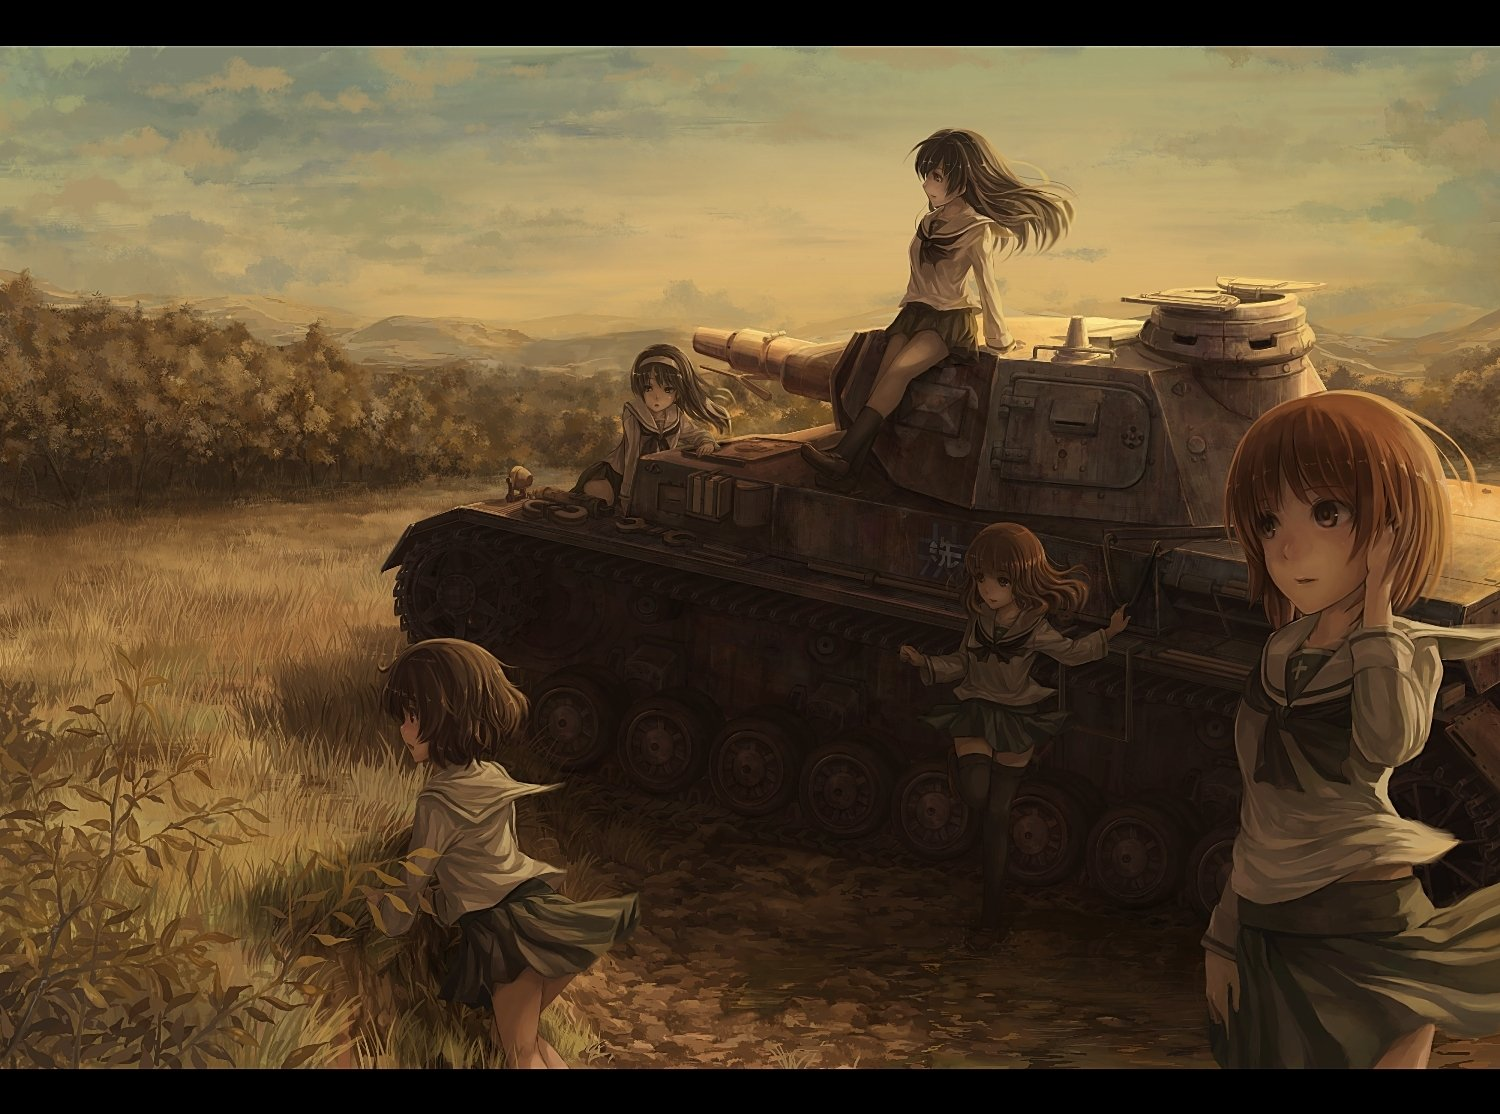 Moe Anime Girl Wallpaper Girls Und Panzer Wallpaper And Background Image